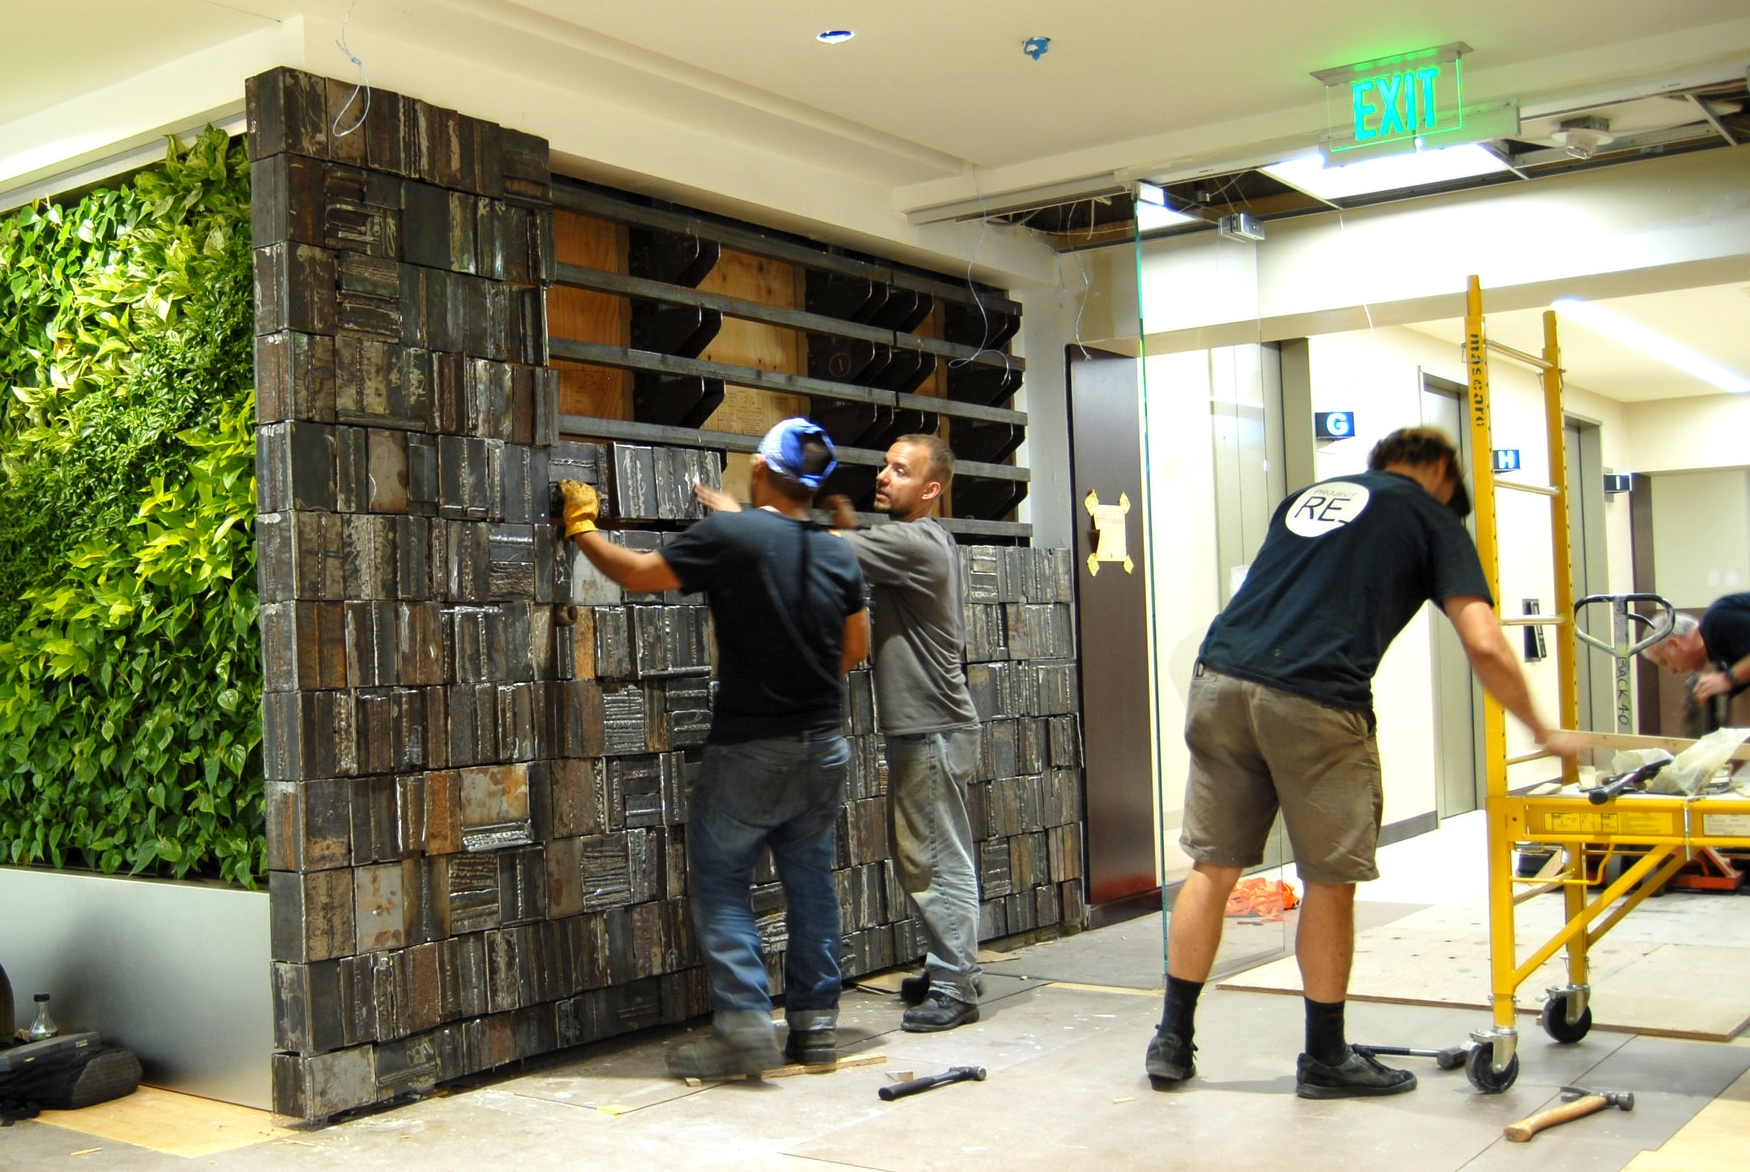 Prefabricated panels of steel blanks were designed to be carried and installed by two people.